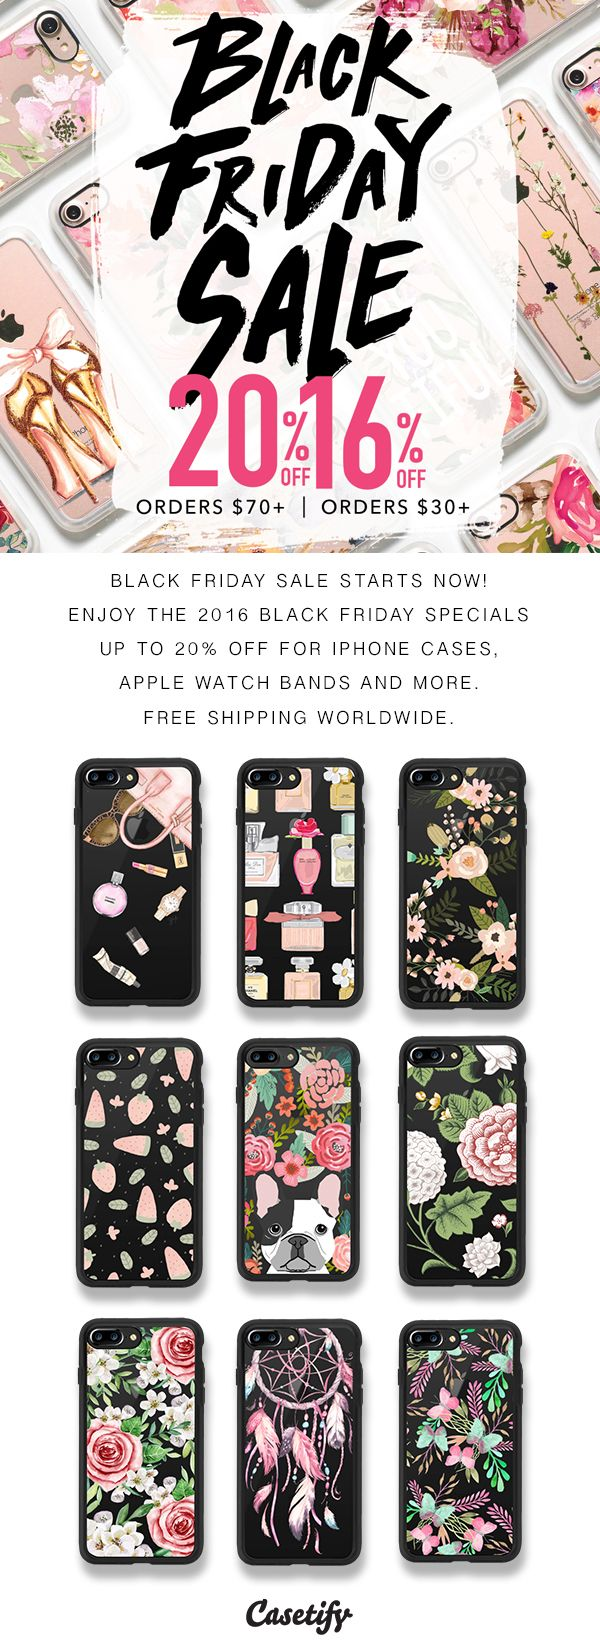 Black Friday Sales starts now. Shop for iPhone 7 Cases, iPhone 7 Plus Cases, Apple Watch Bands and more here > https://www.casetify.com/black-friday#/